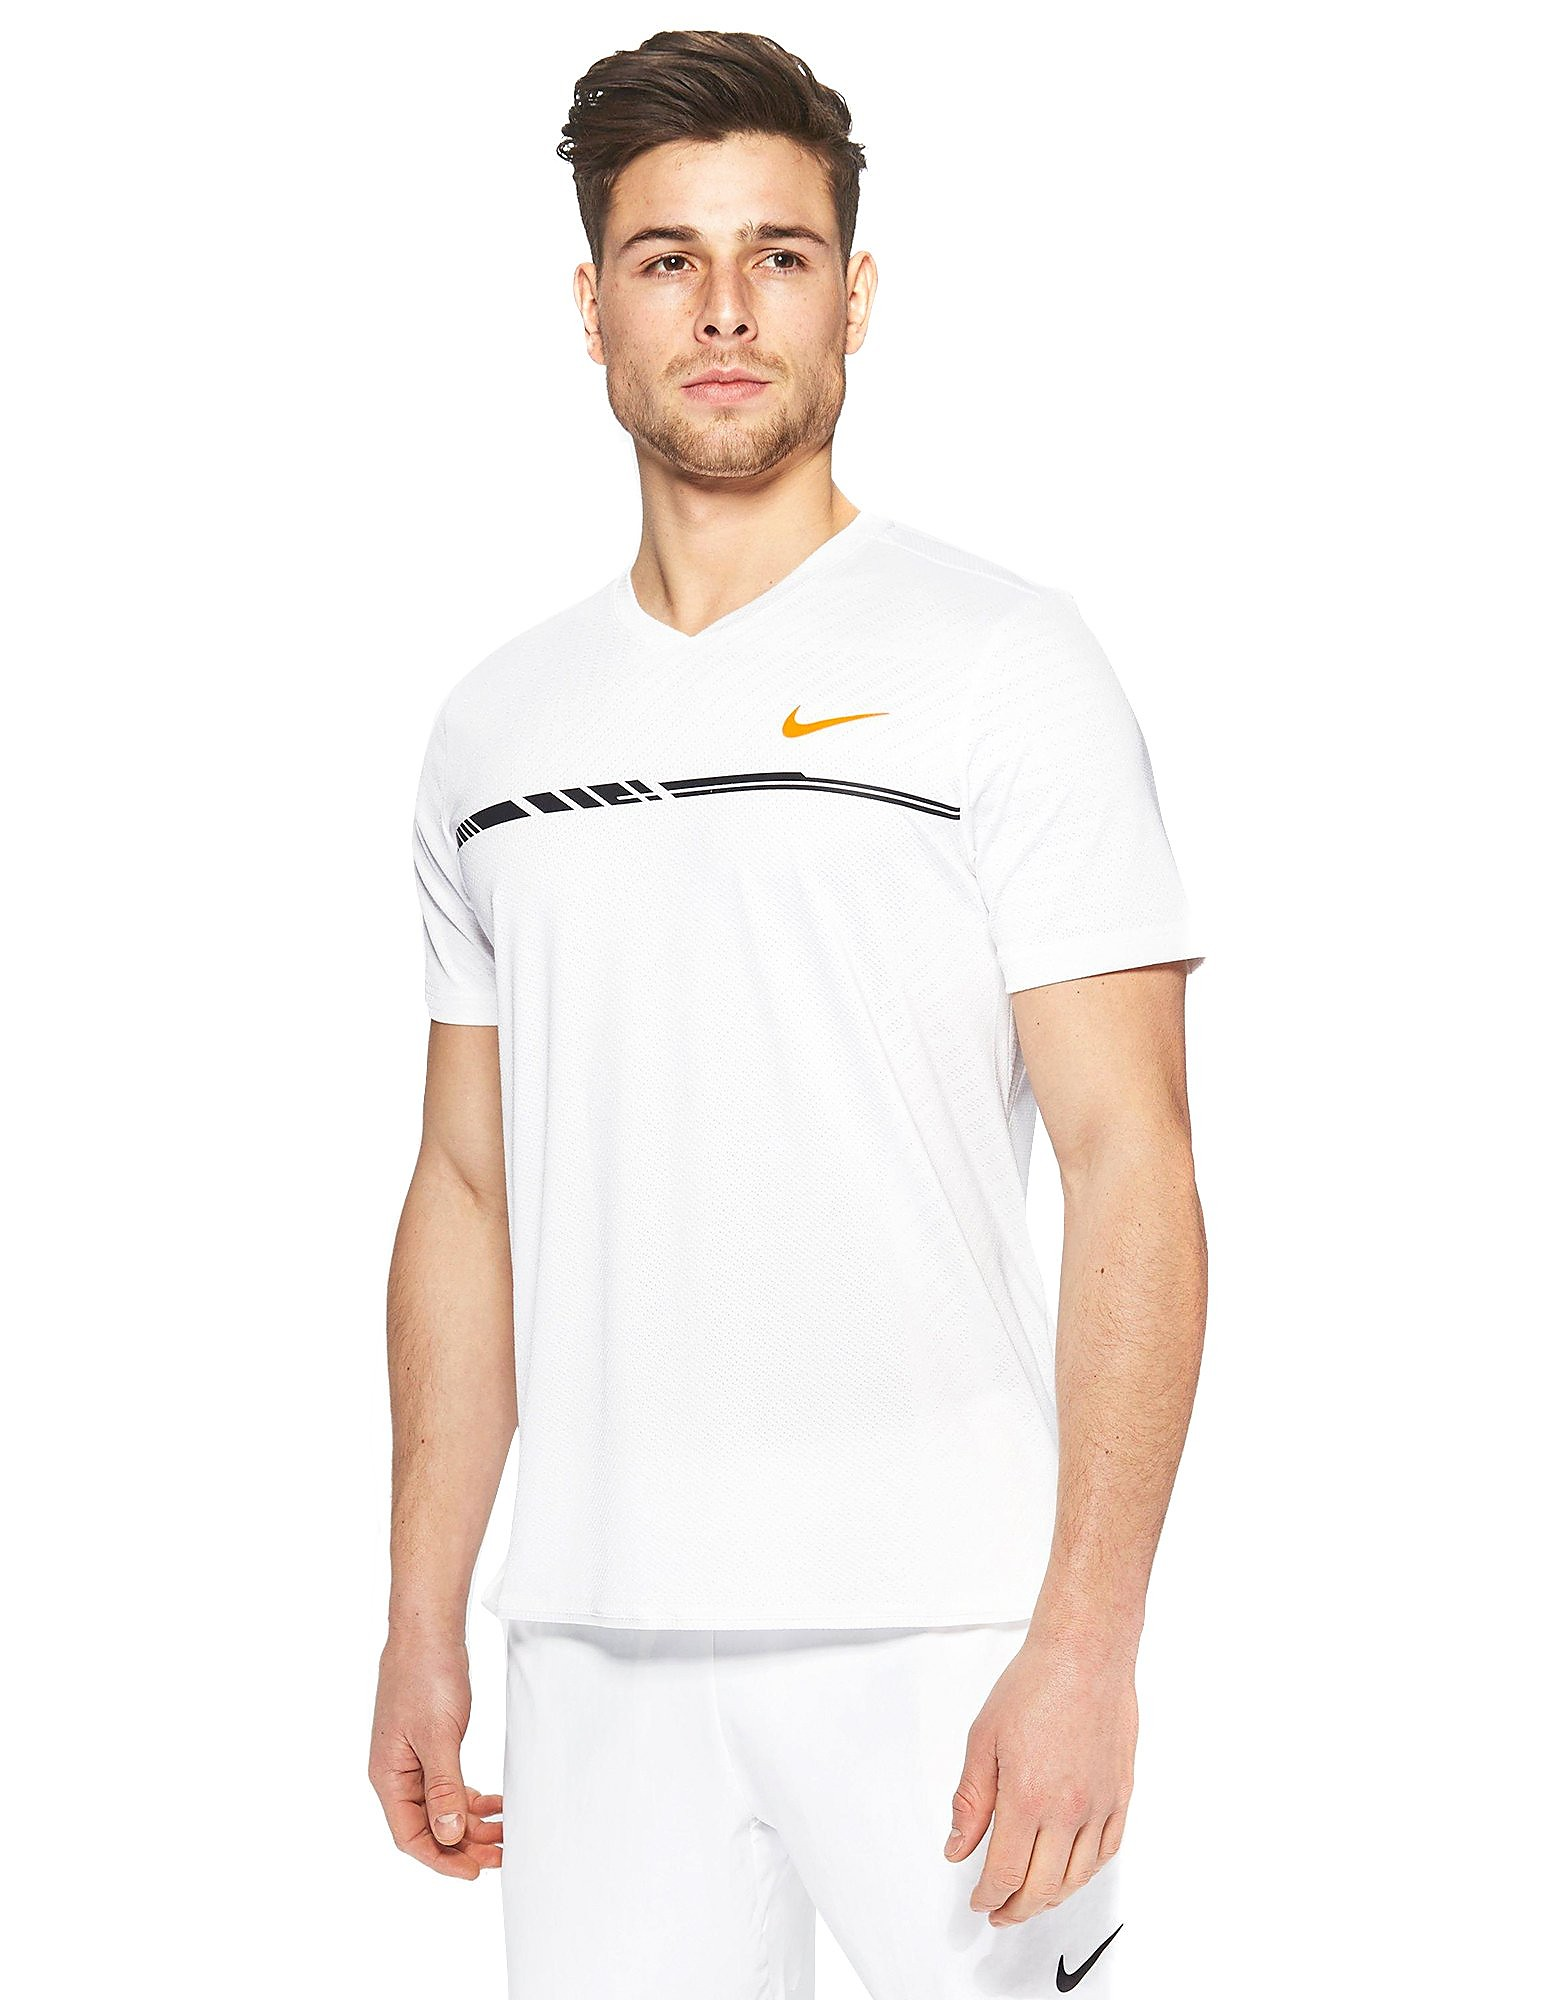 Nike Court Dry Challenge Men's Tennis Top